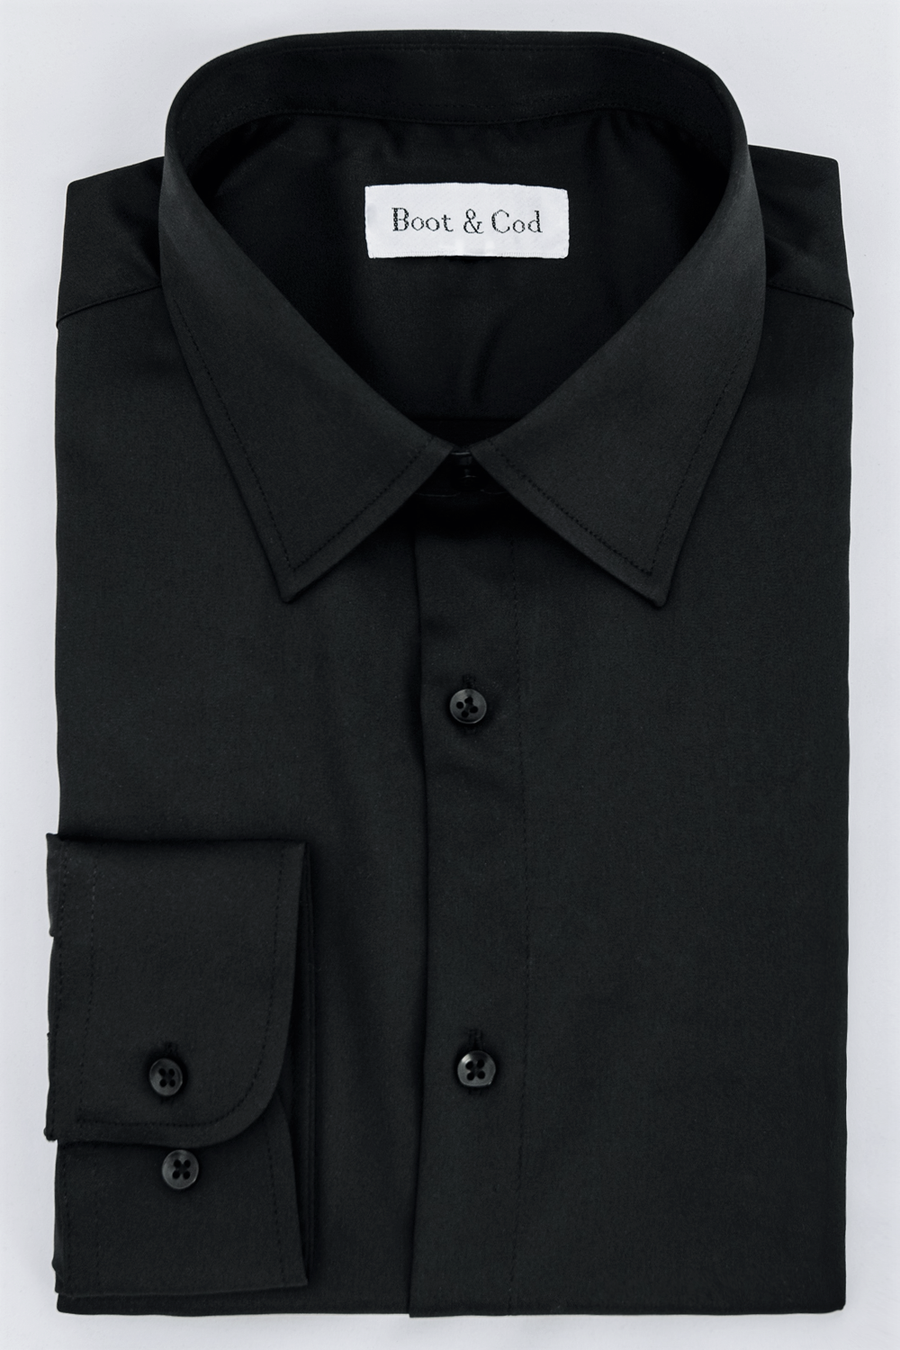 Performance Classic Black Dress Shirt